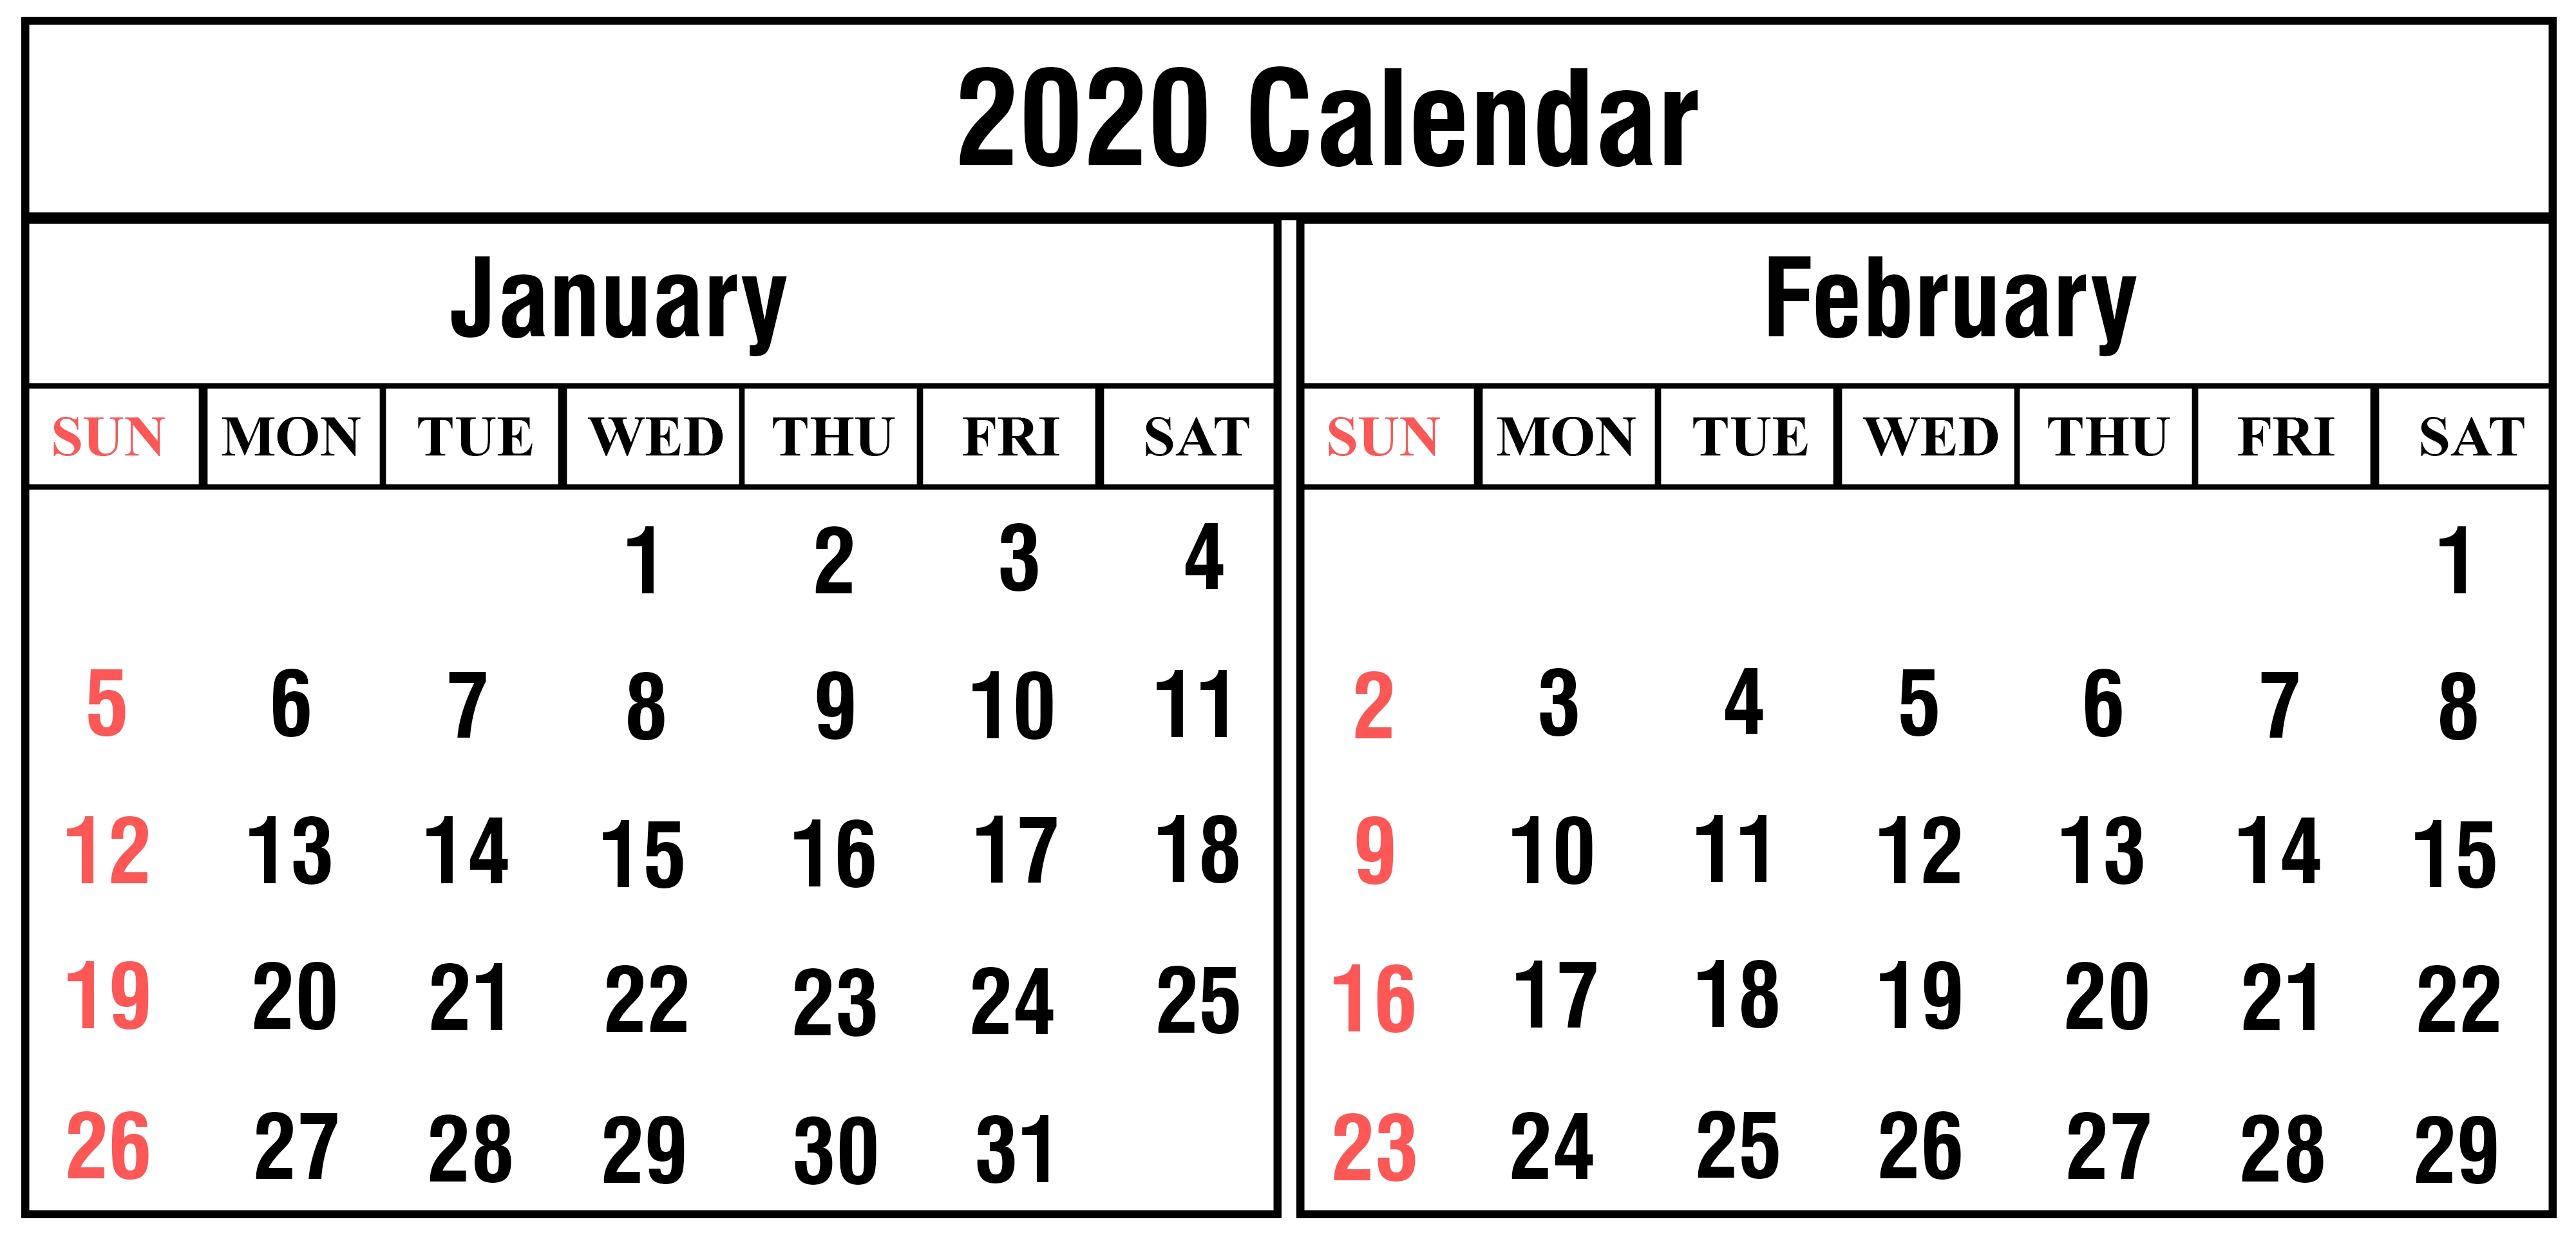 February 2020 Calendar Wallpapers - Wallpaper Cave-January And Feb 2020 Calendar